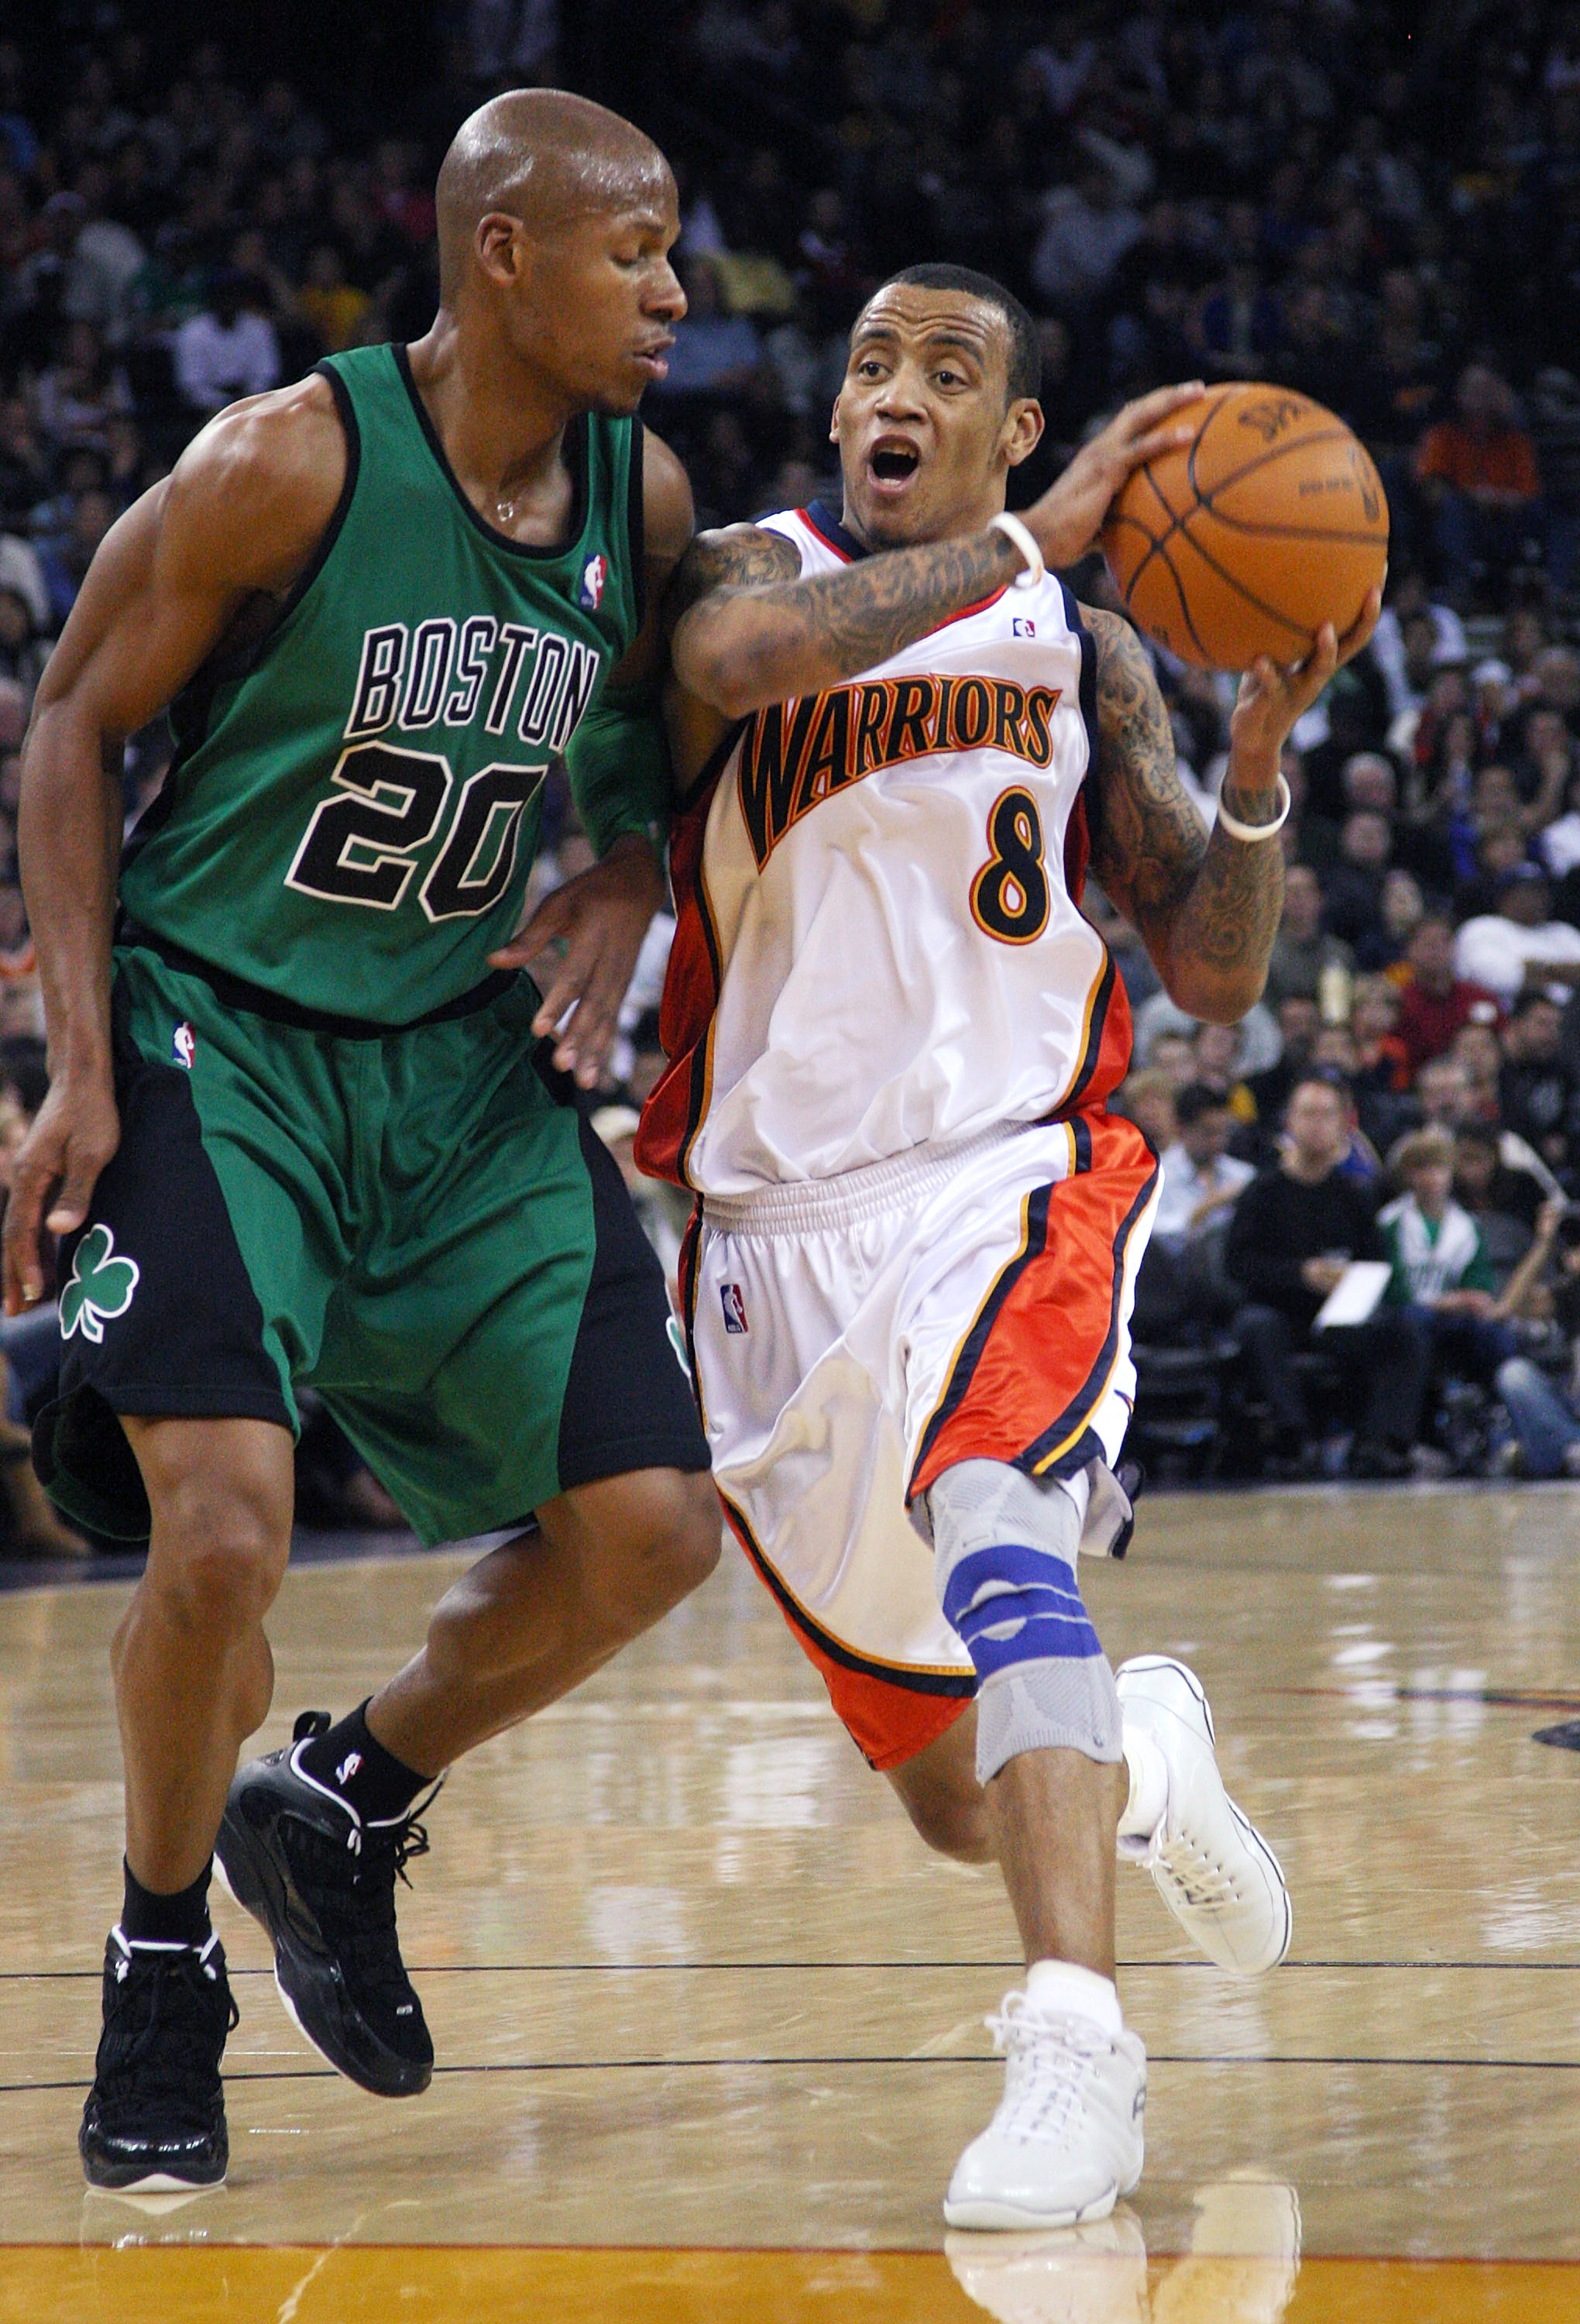 OAKLAND, CA - DECEMBER 28:  Monta Ellis #8 of the Golden State Warriors drives against Ray Allen #20 of the Boston Celtics during an NBA game at Oracle Arena on December 28, 2009 in Oakland, California. NOTE TO USER: User expressly acknowledges and agrees